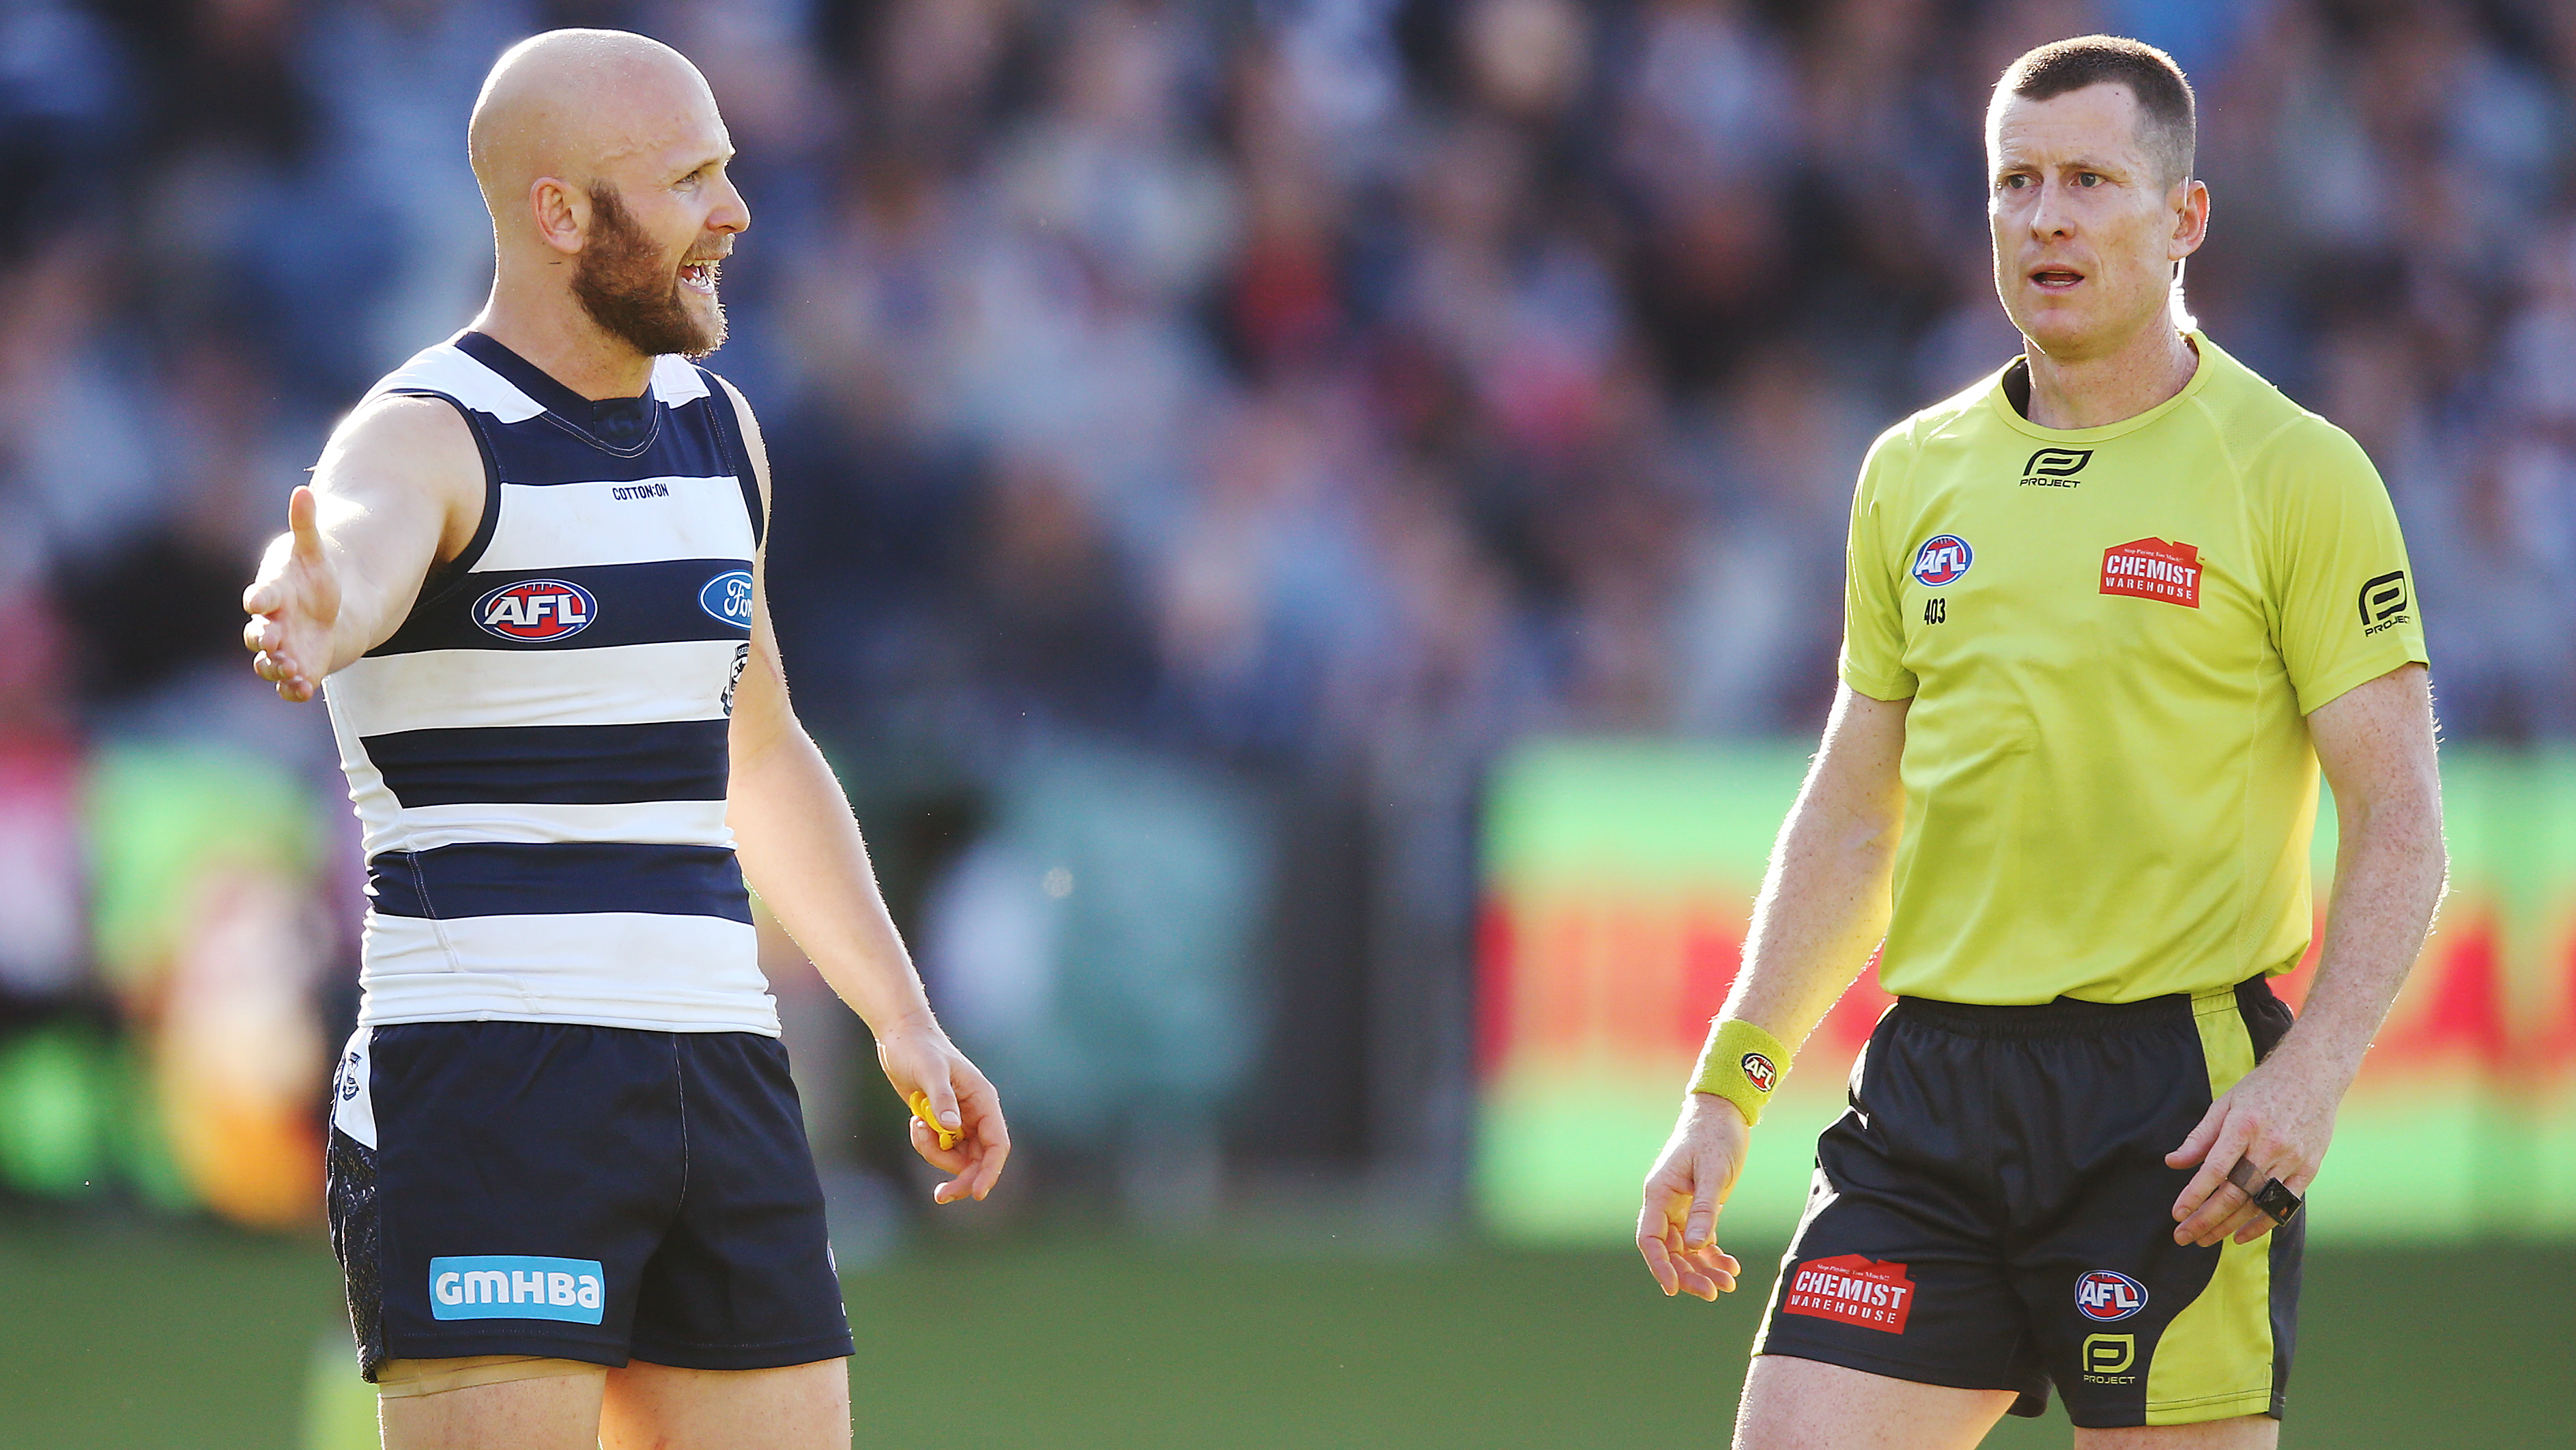 Cooney: Umpires cop nothing compared to 'horrifying' player abuse